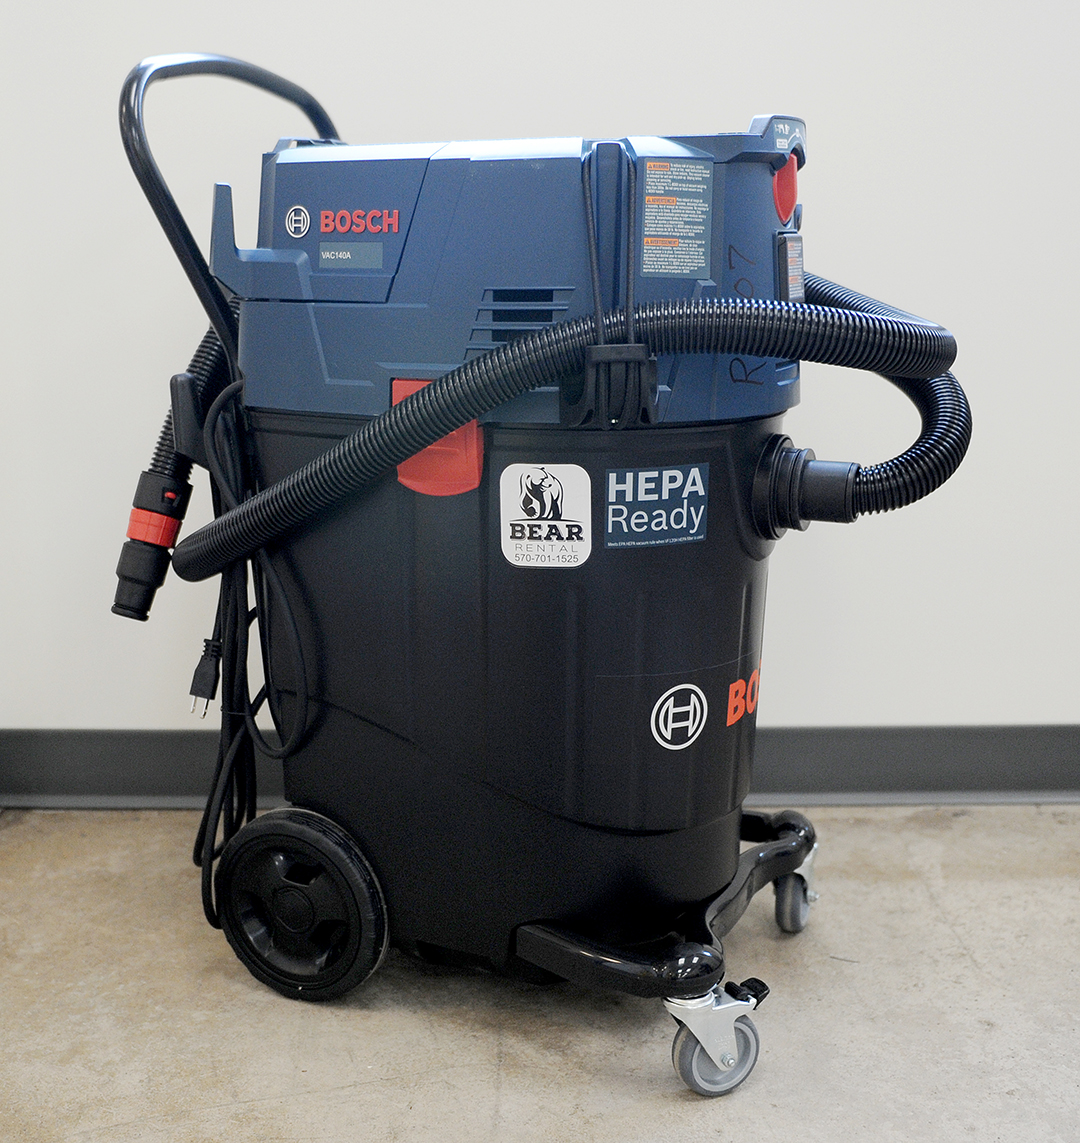 Bosch 14 gallon dust extractor Rental